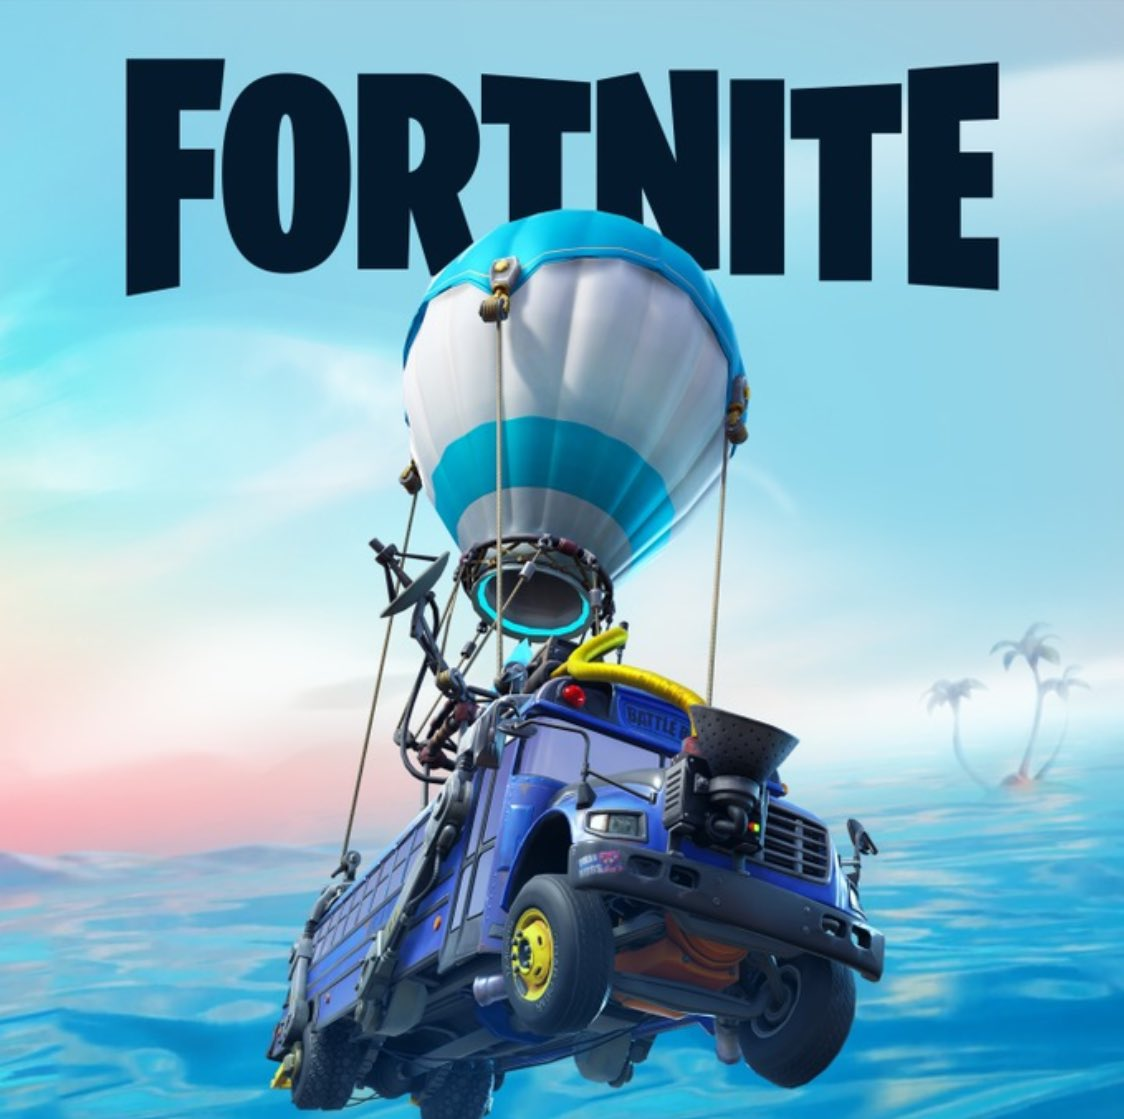 Playstation leaked the new Icon for the New Fortnite Season ! #Fortnite pic.twitter.com/VKH4Wwckav